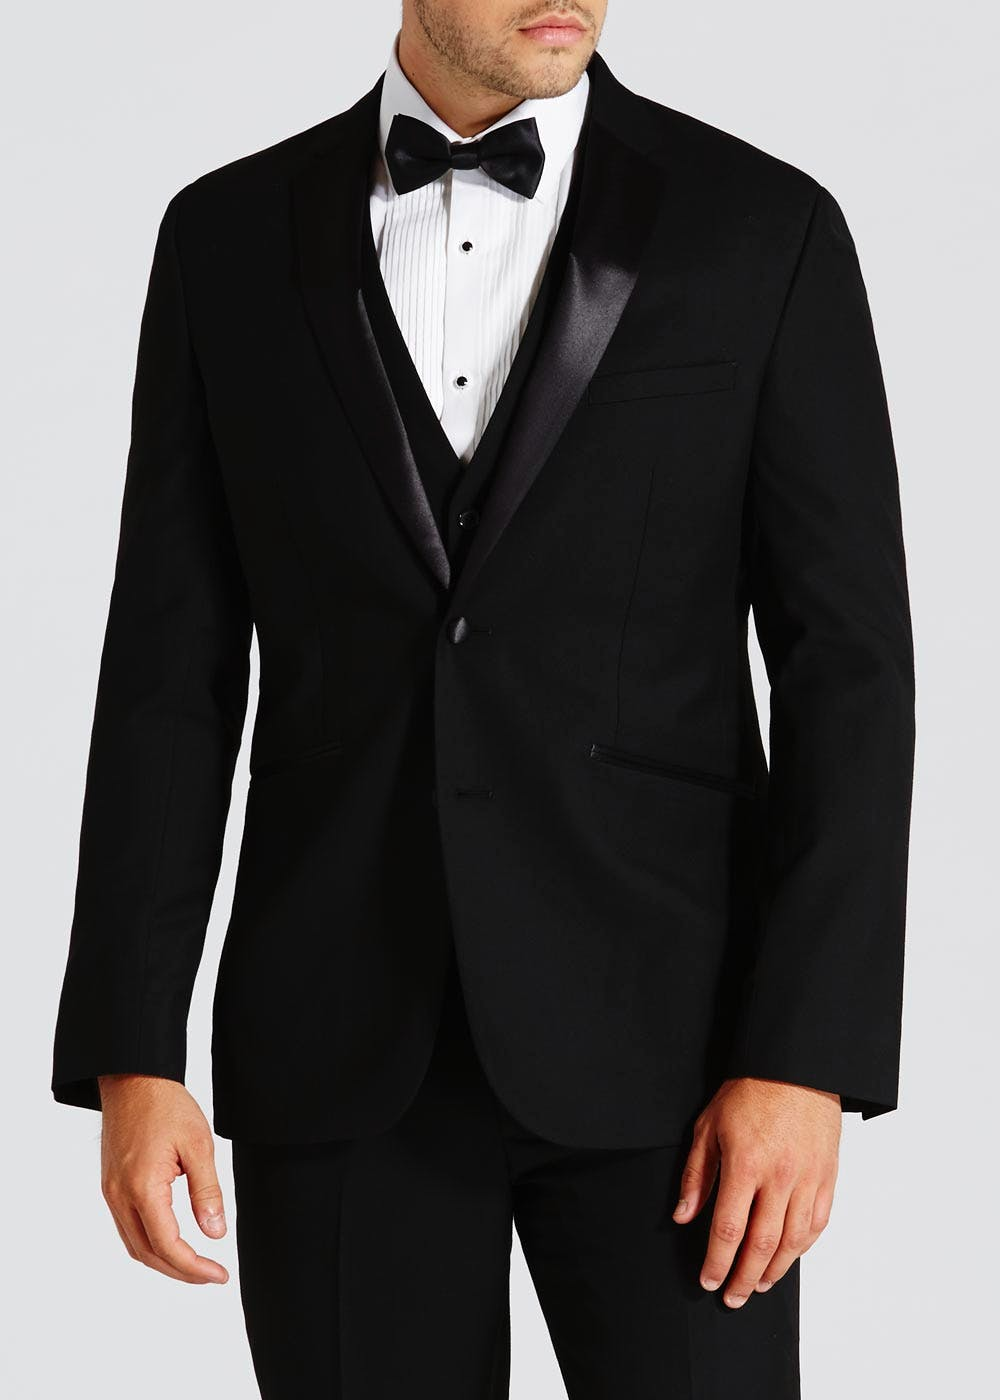 Dinner suits are all about looking sharp, so if you want to ensure the dinner suit you like the look of is going to be a perfect fit for you, check out our size guides that can assist you in deciding what size to purchase for the ultimate look.